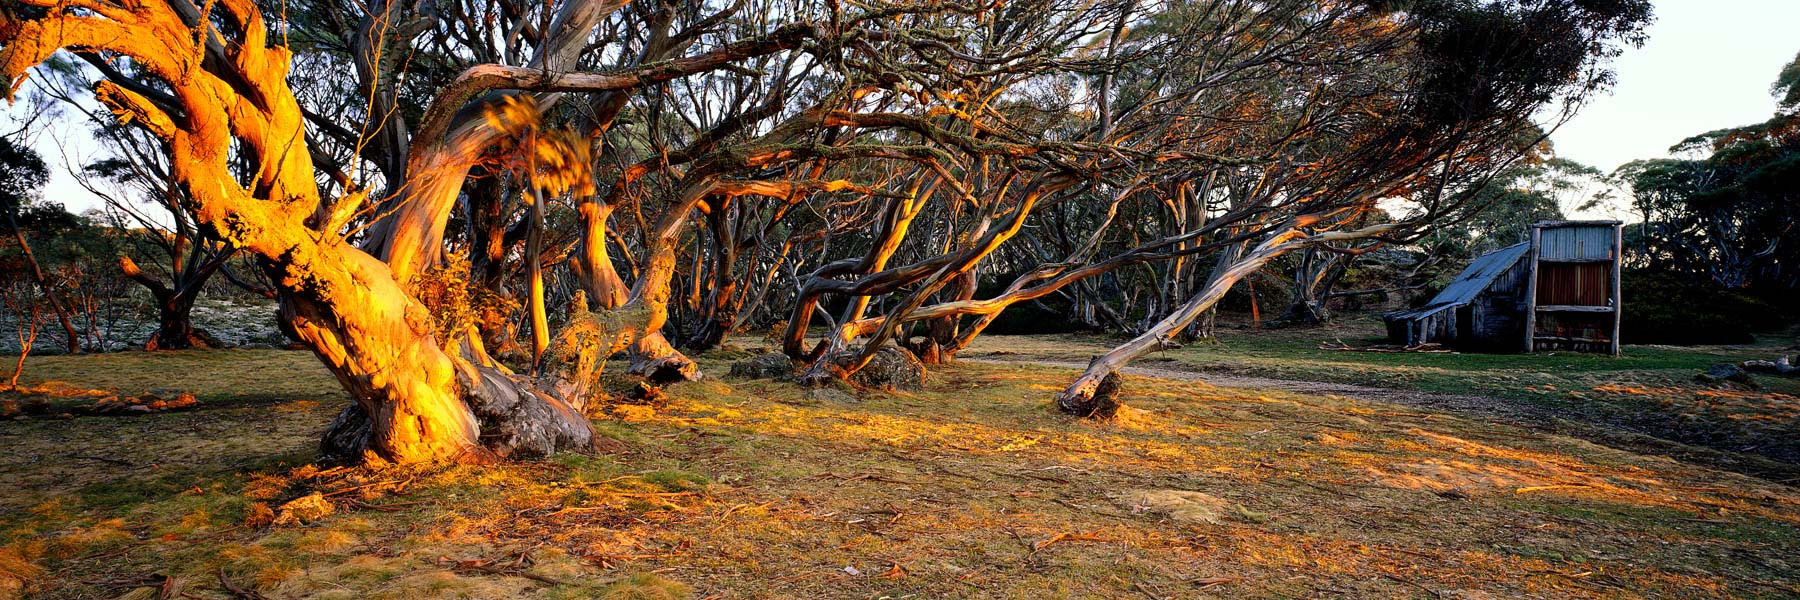 Golden afternoon light playing across the snow gums near Wallace Hut, Victoria, Australia.